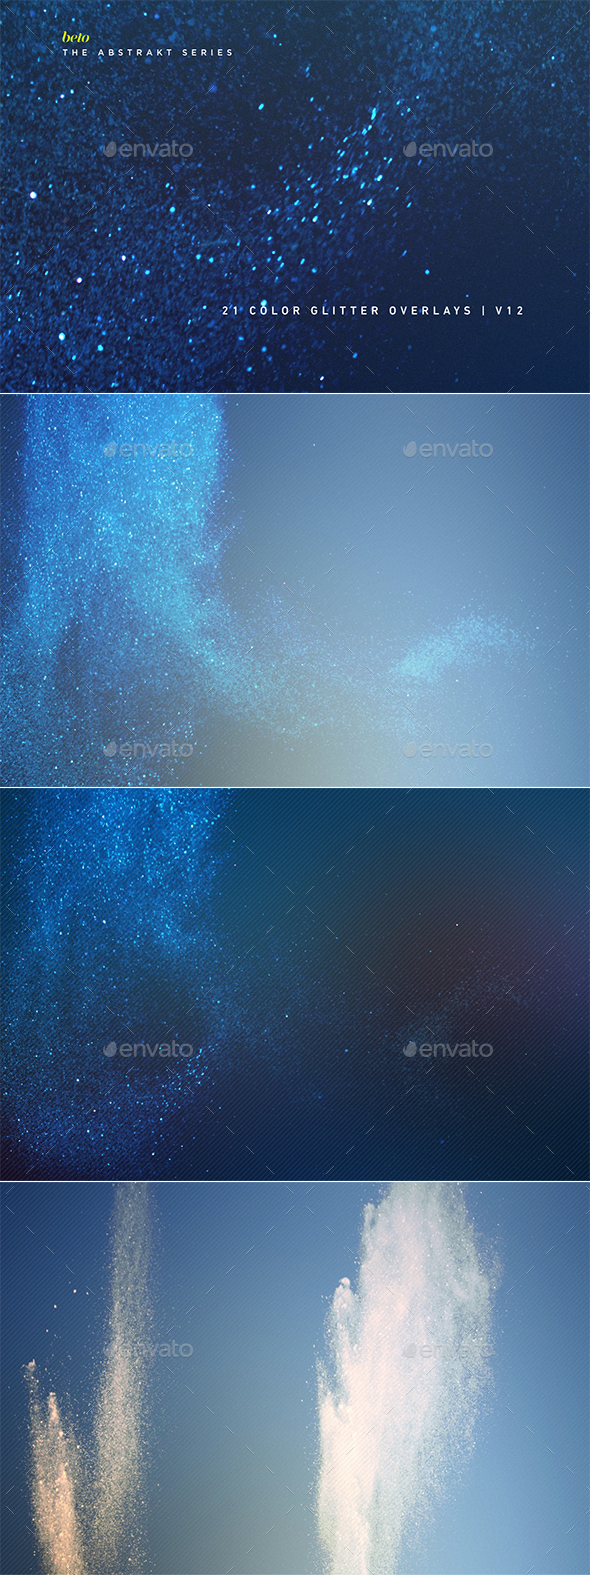 Color Glitter Overlays V12 - Abstract Backgrounds